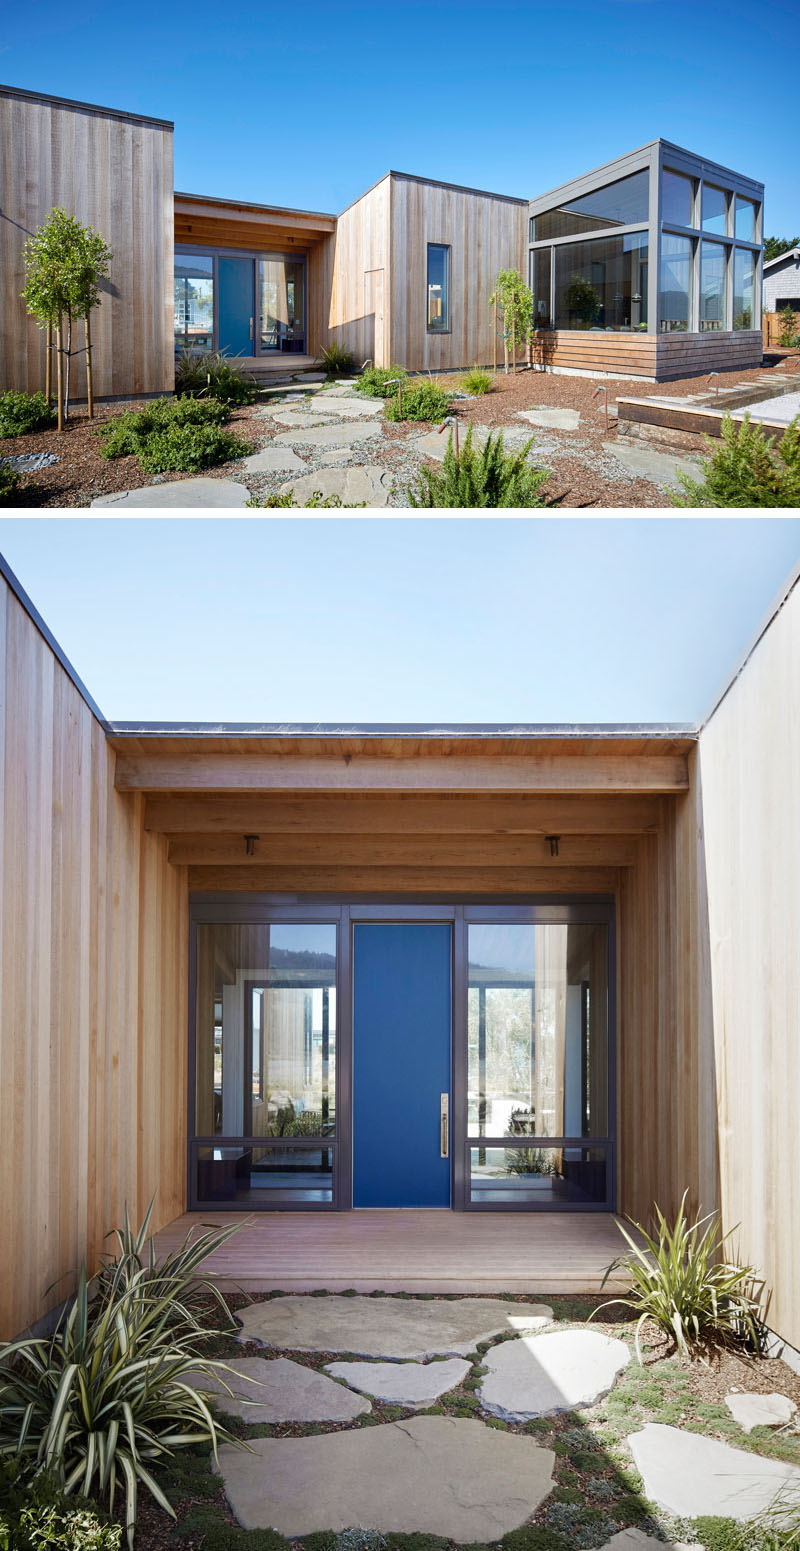 Surrounded by light wood cladding and large windows revealing the interior of the house, the front door provides a nice blue addition to the exterior of this modern home.